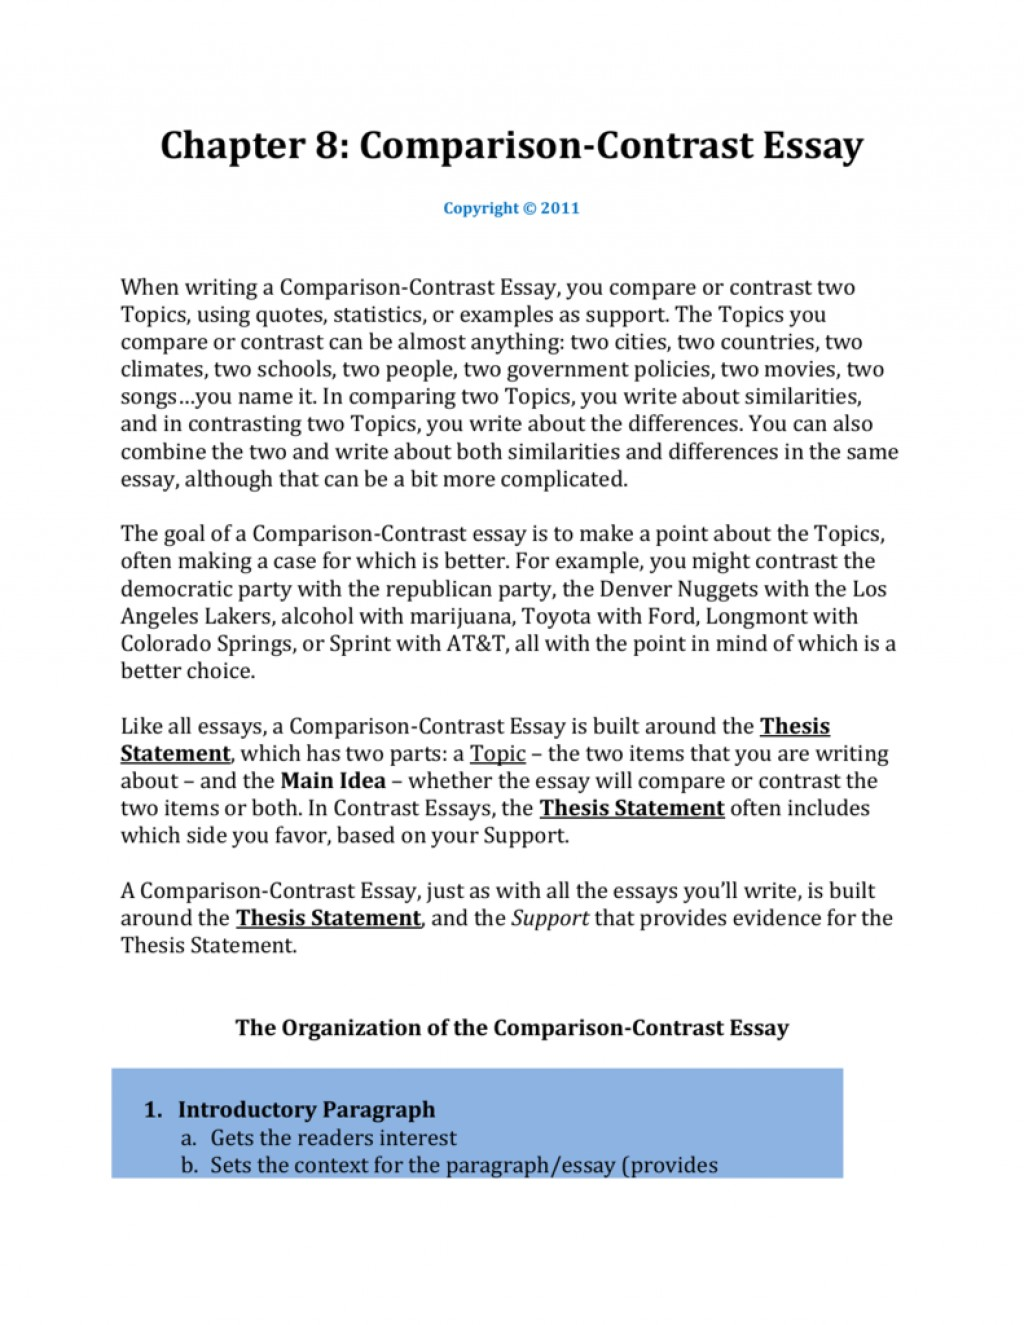 010 Essay Example Comparison Contrast 007207405 1 Beautiful Compare Format College Graphic Organizer Pdf Examples Large